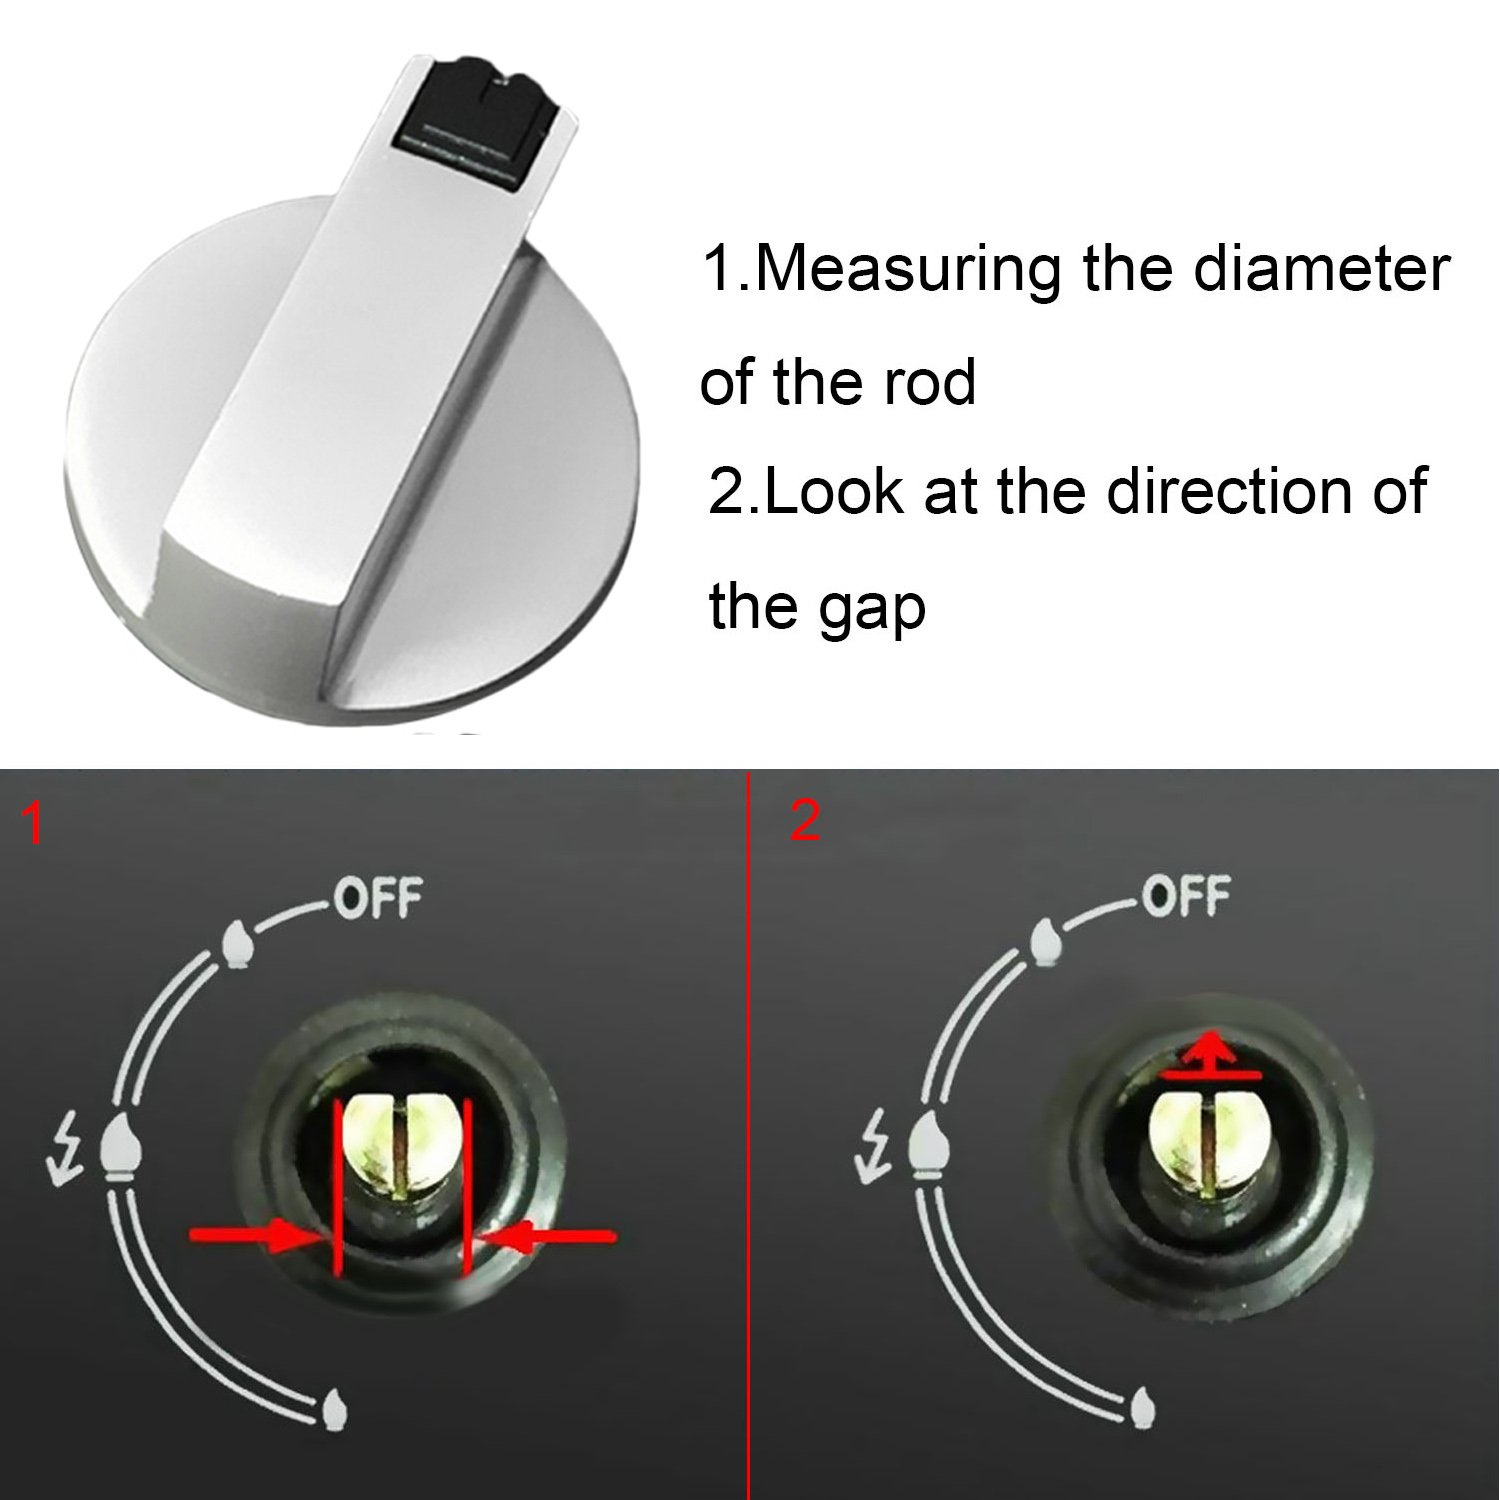 Gas Stove Knob 2pcs Metal 6mm Universal Silver Stove Switch Control Knobs Adaptors Oven Rotary Switch Cooking Surface Control Locks